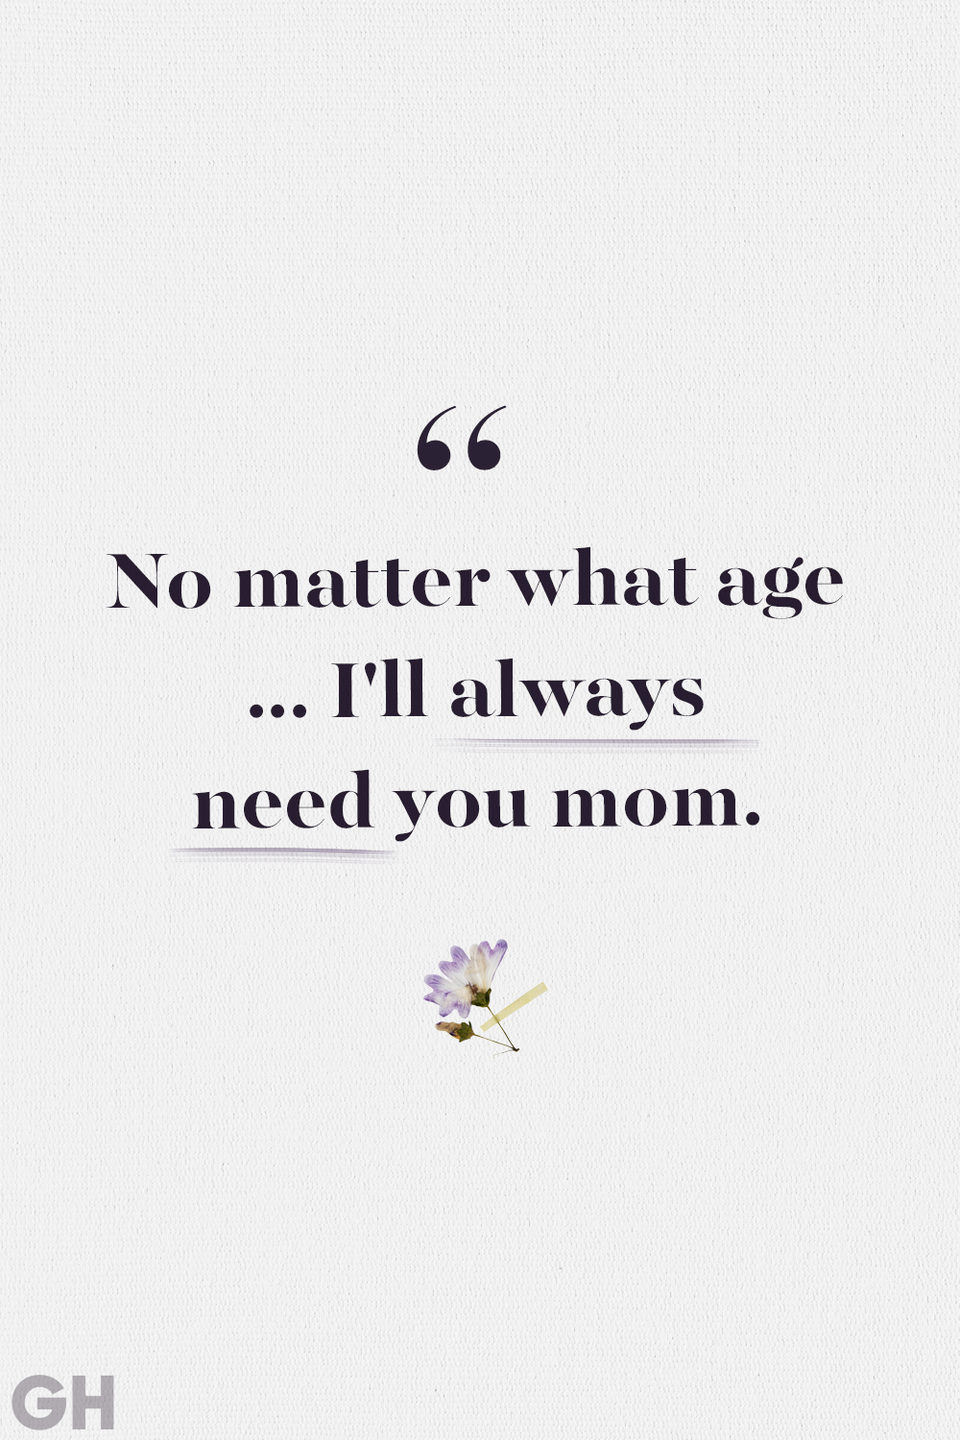 <p>No matter what age ... I'll always need you mom.</p>